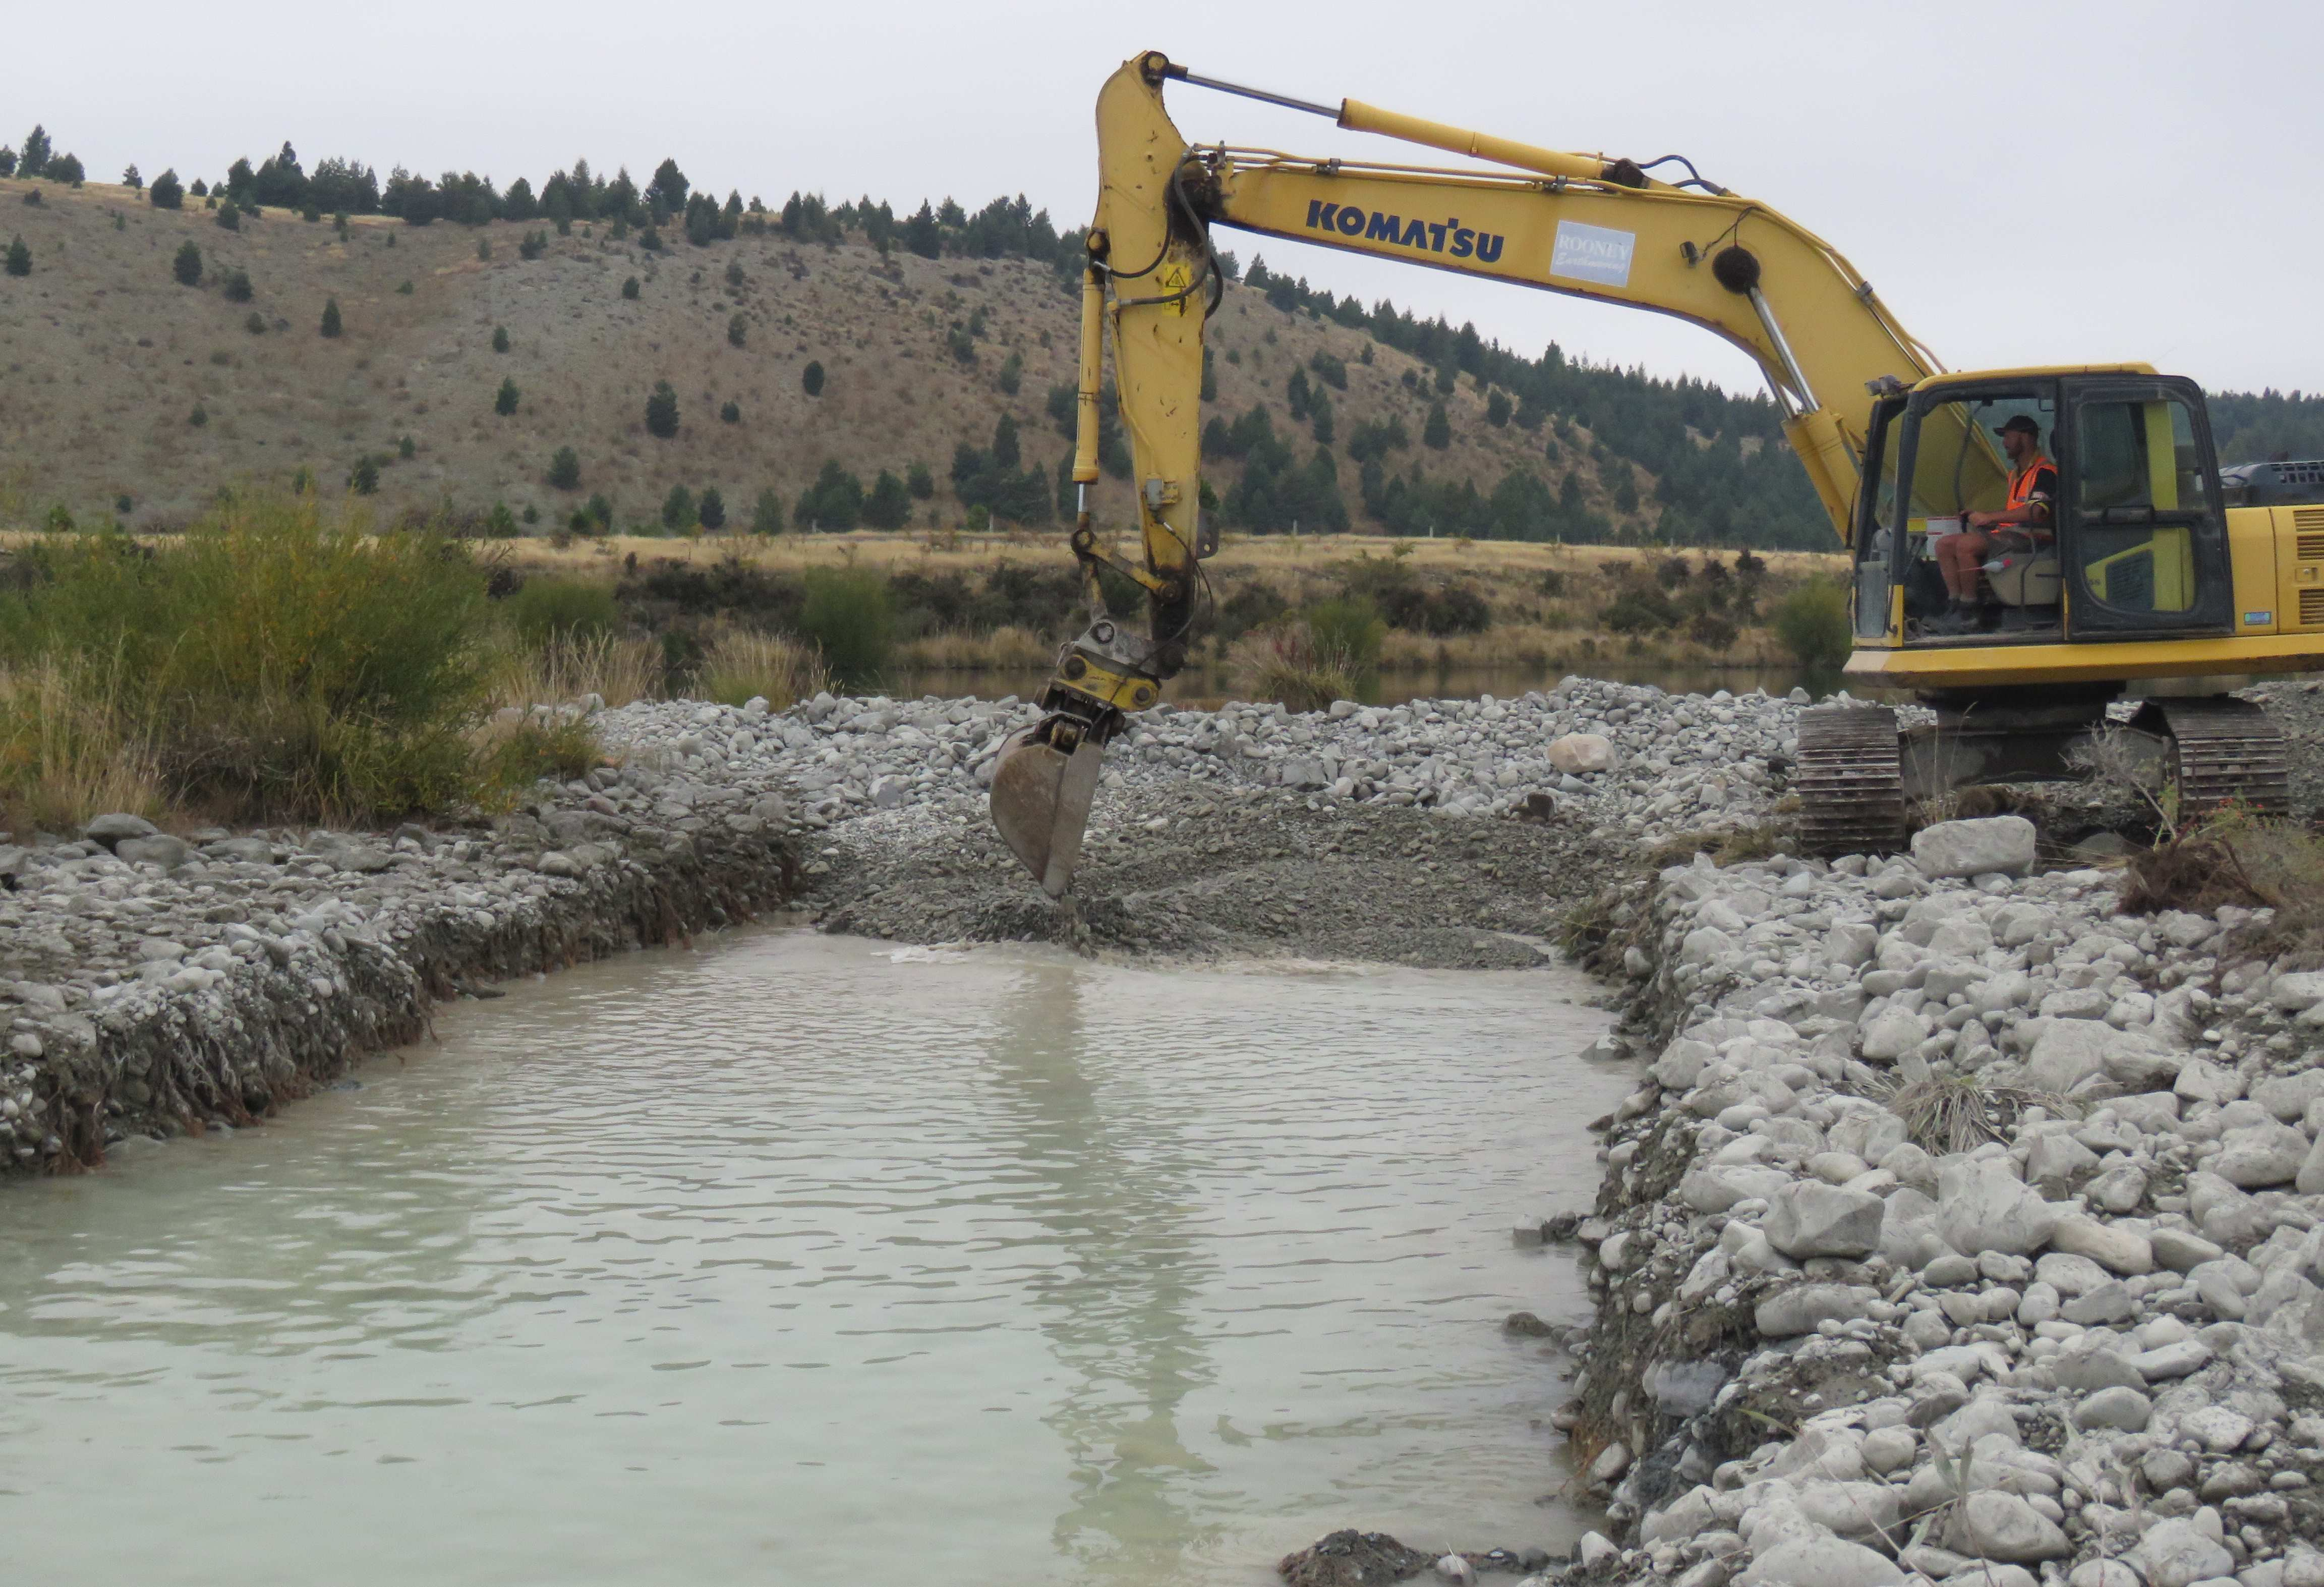 WFR1819.56The excavated channel gets filled with spawning gravel Credit Rhys Adams